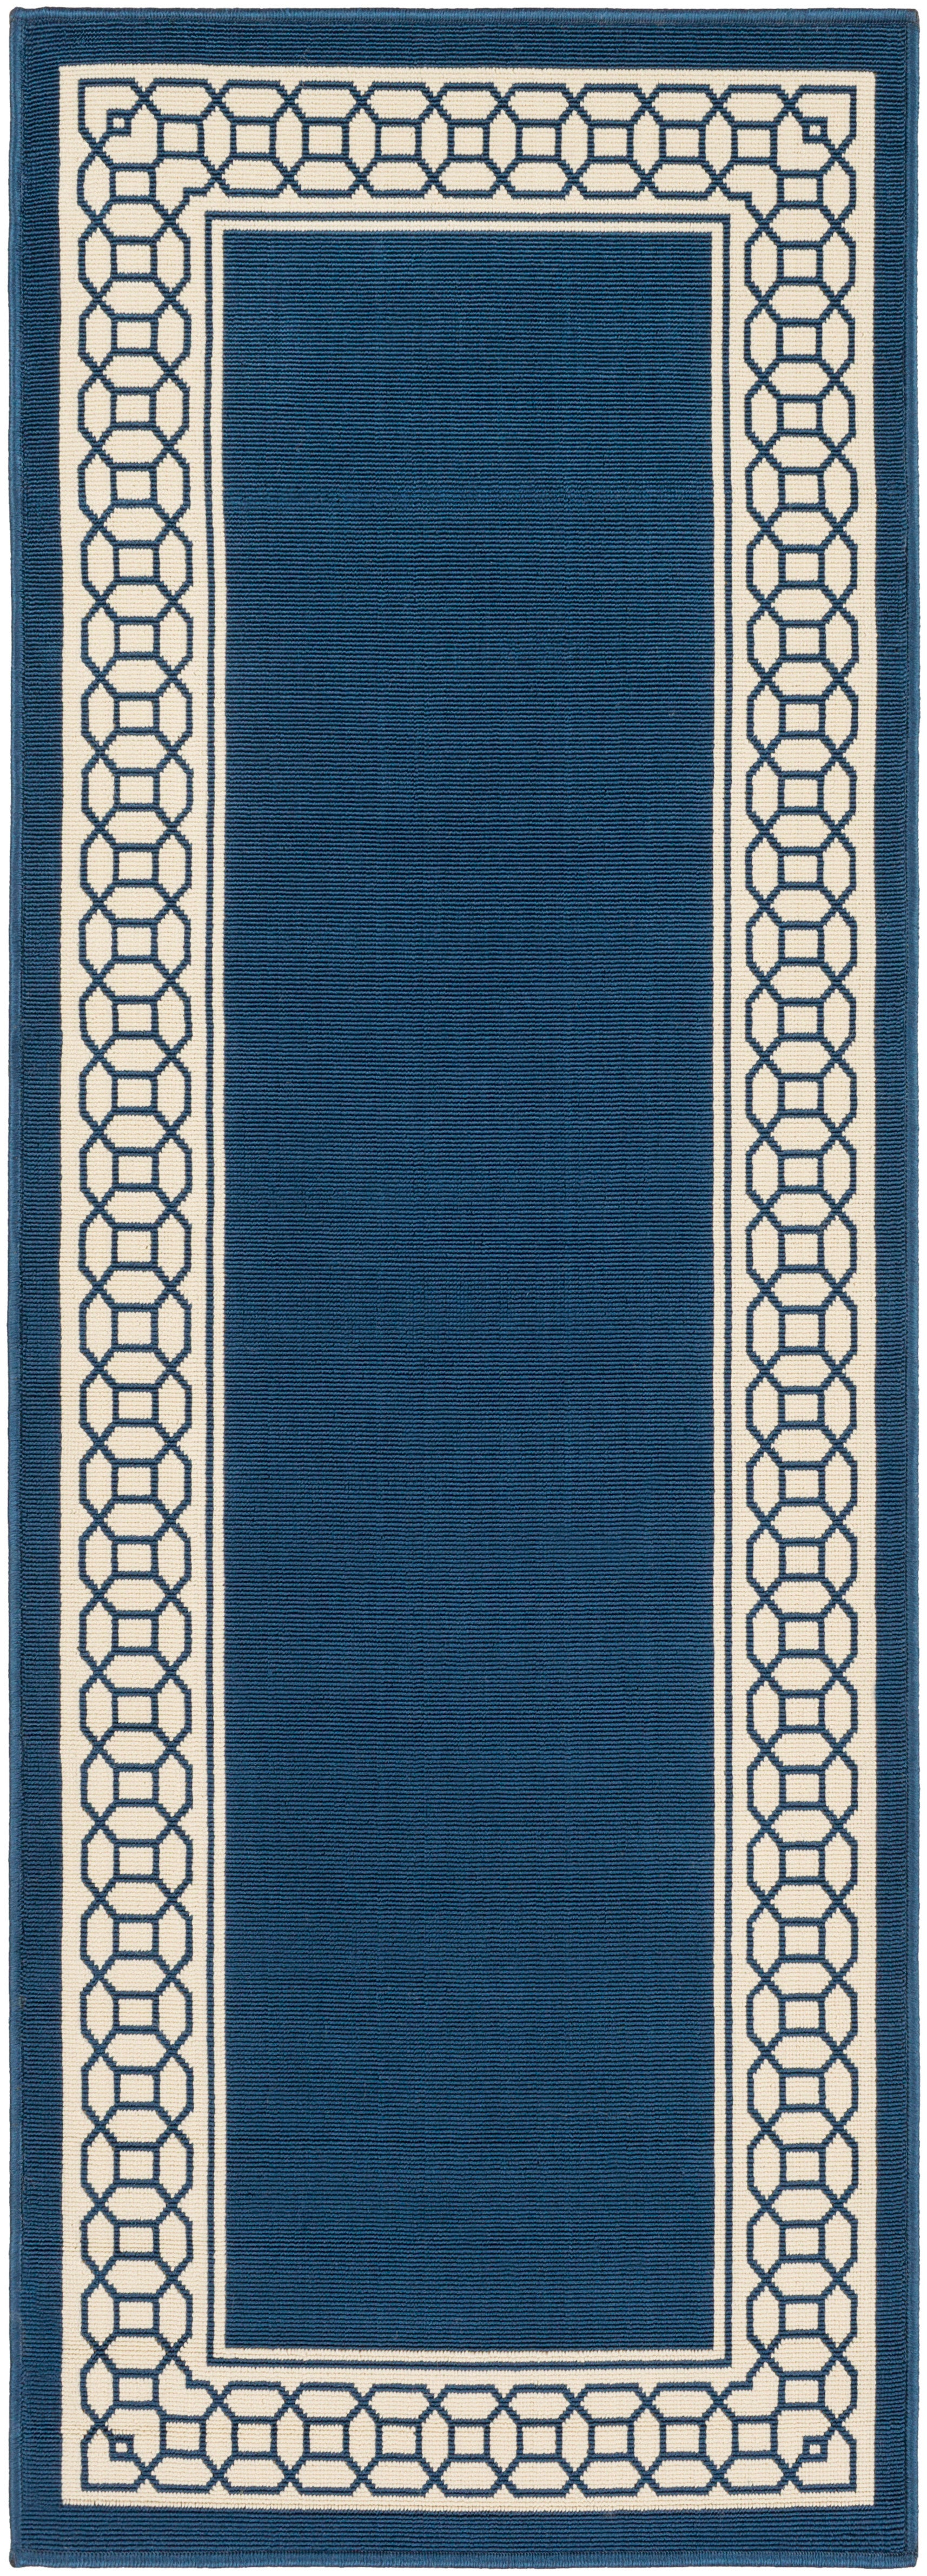 Surya Marina MRN3033 Blue/Neutral Outdoor Area Rug